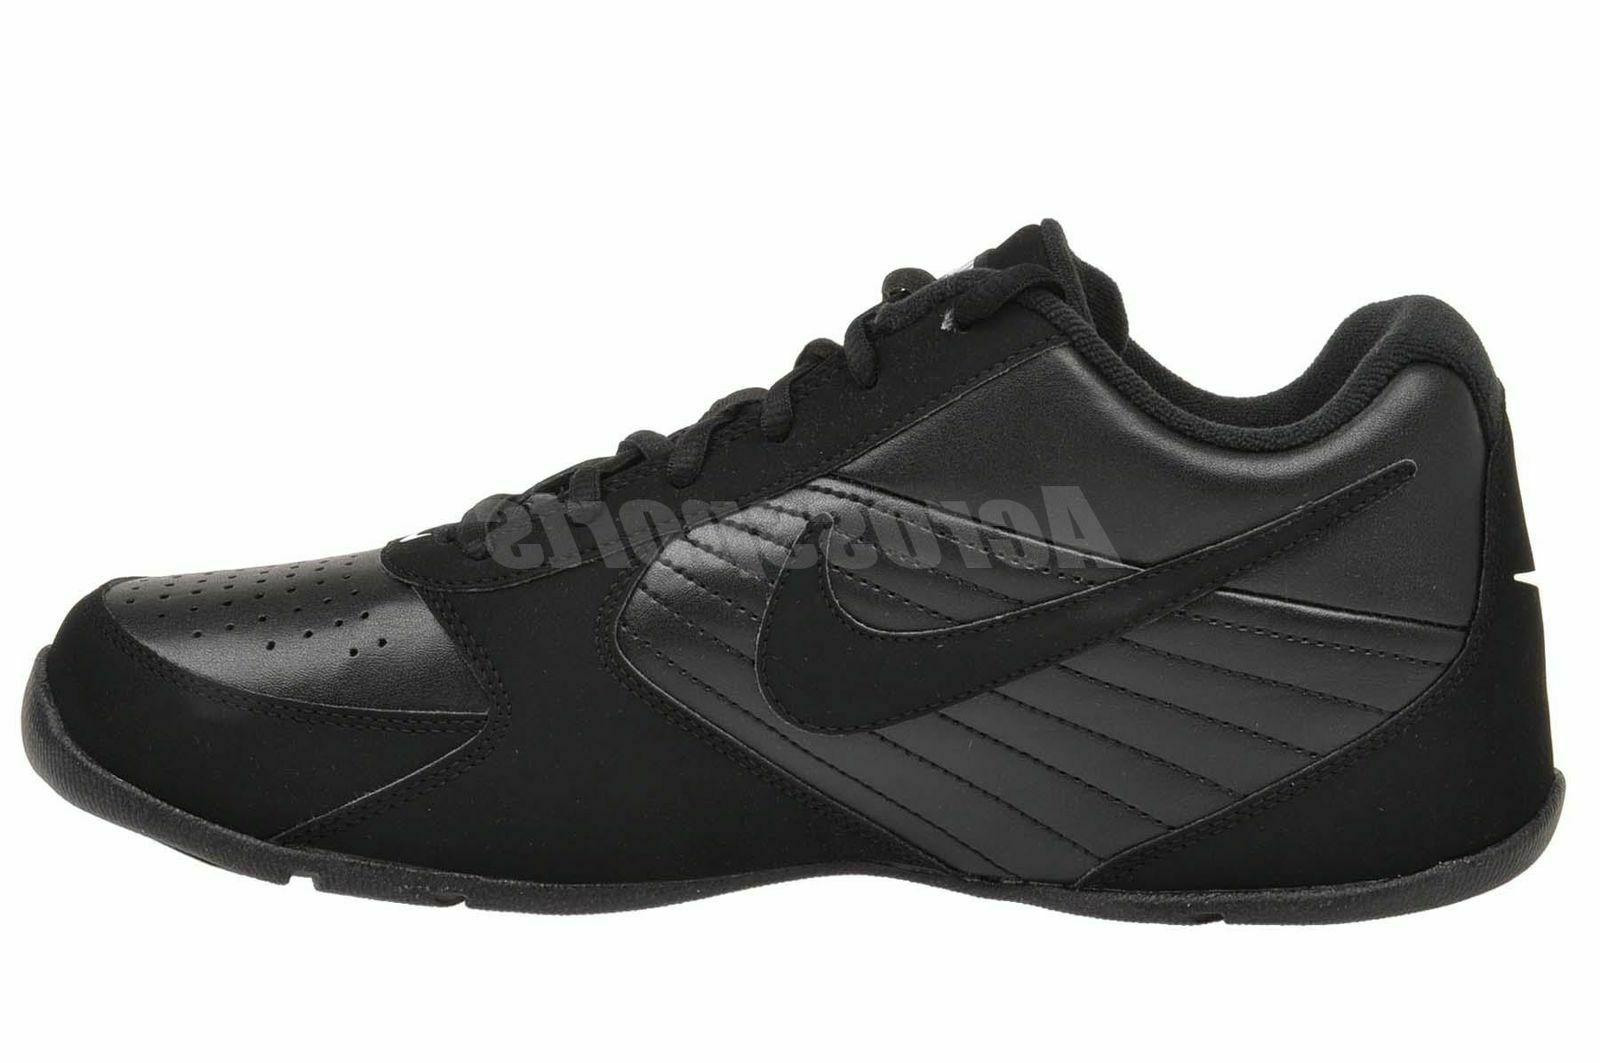 Nike Low Men's Black